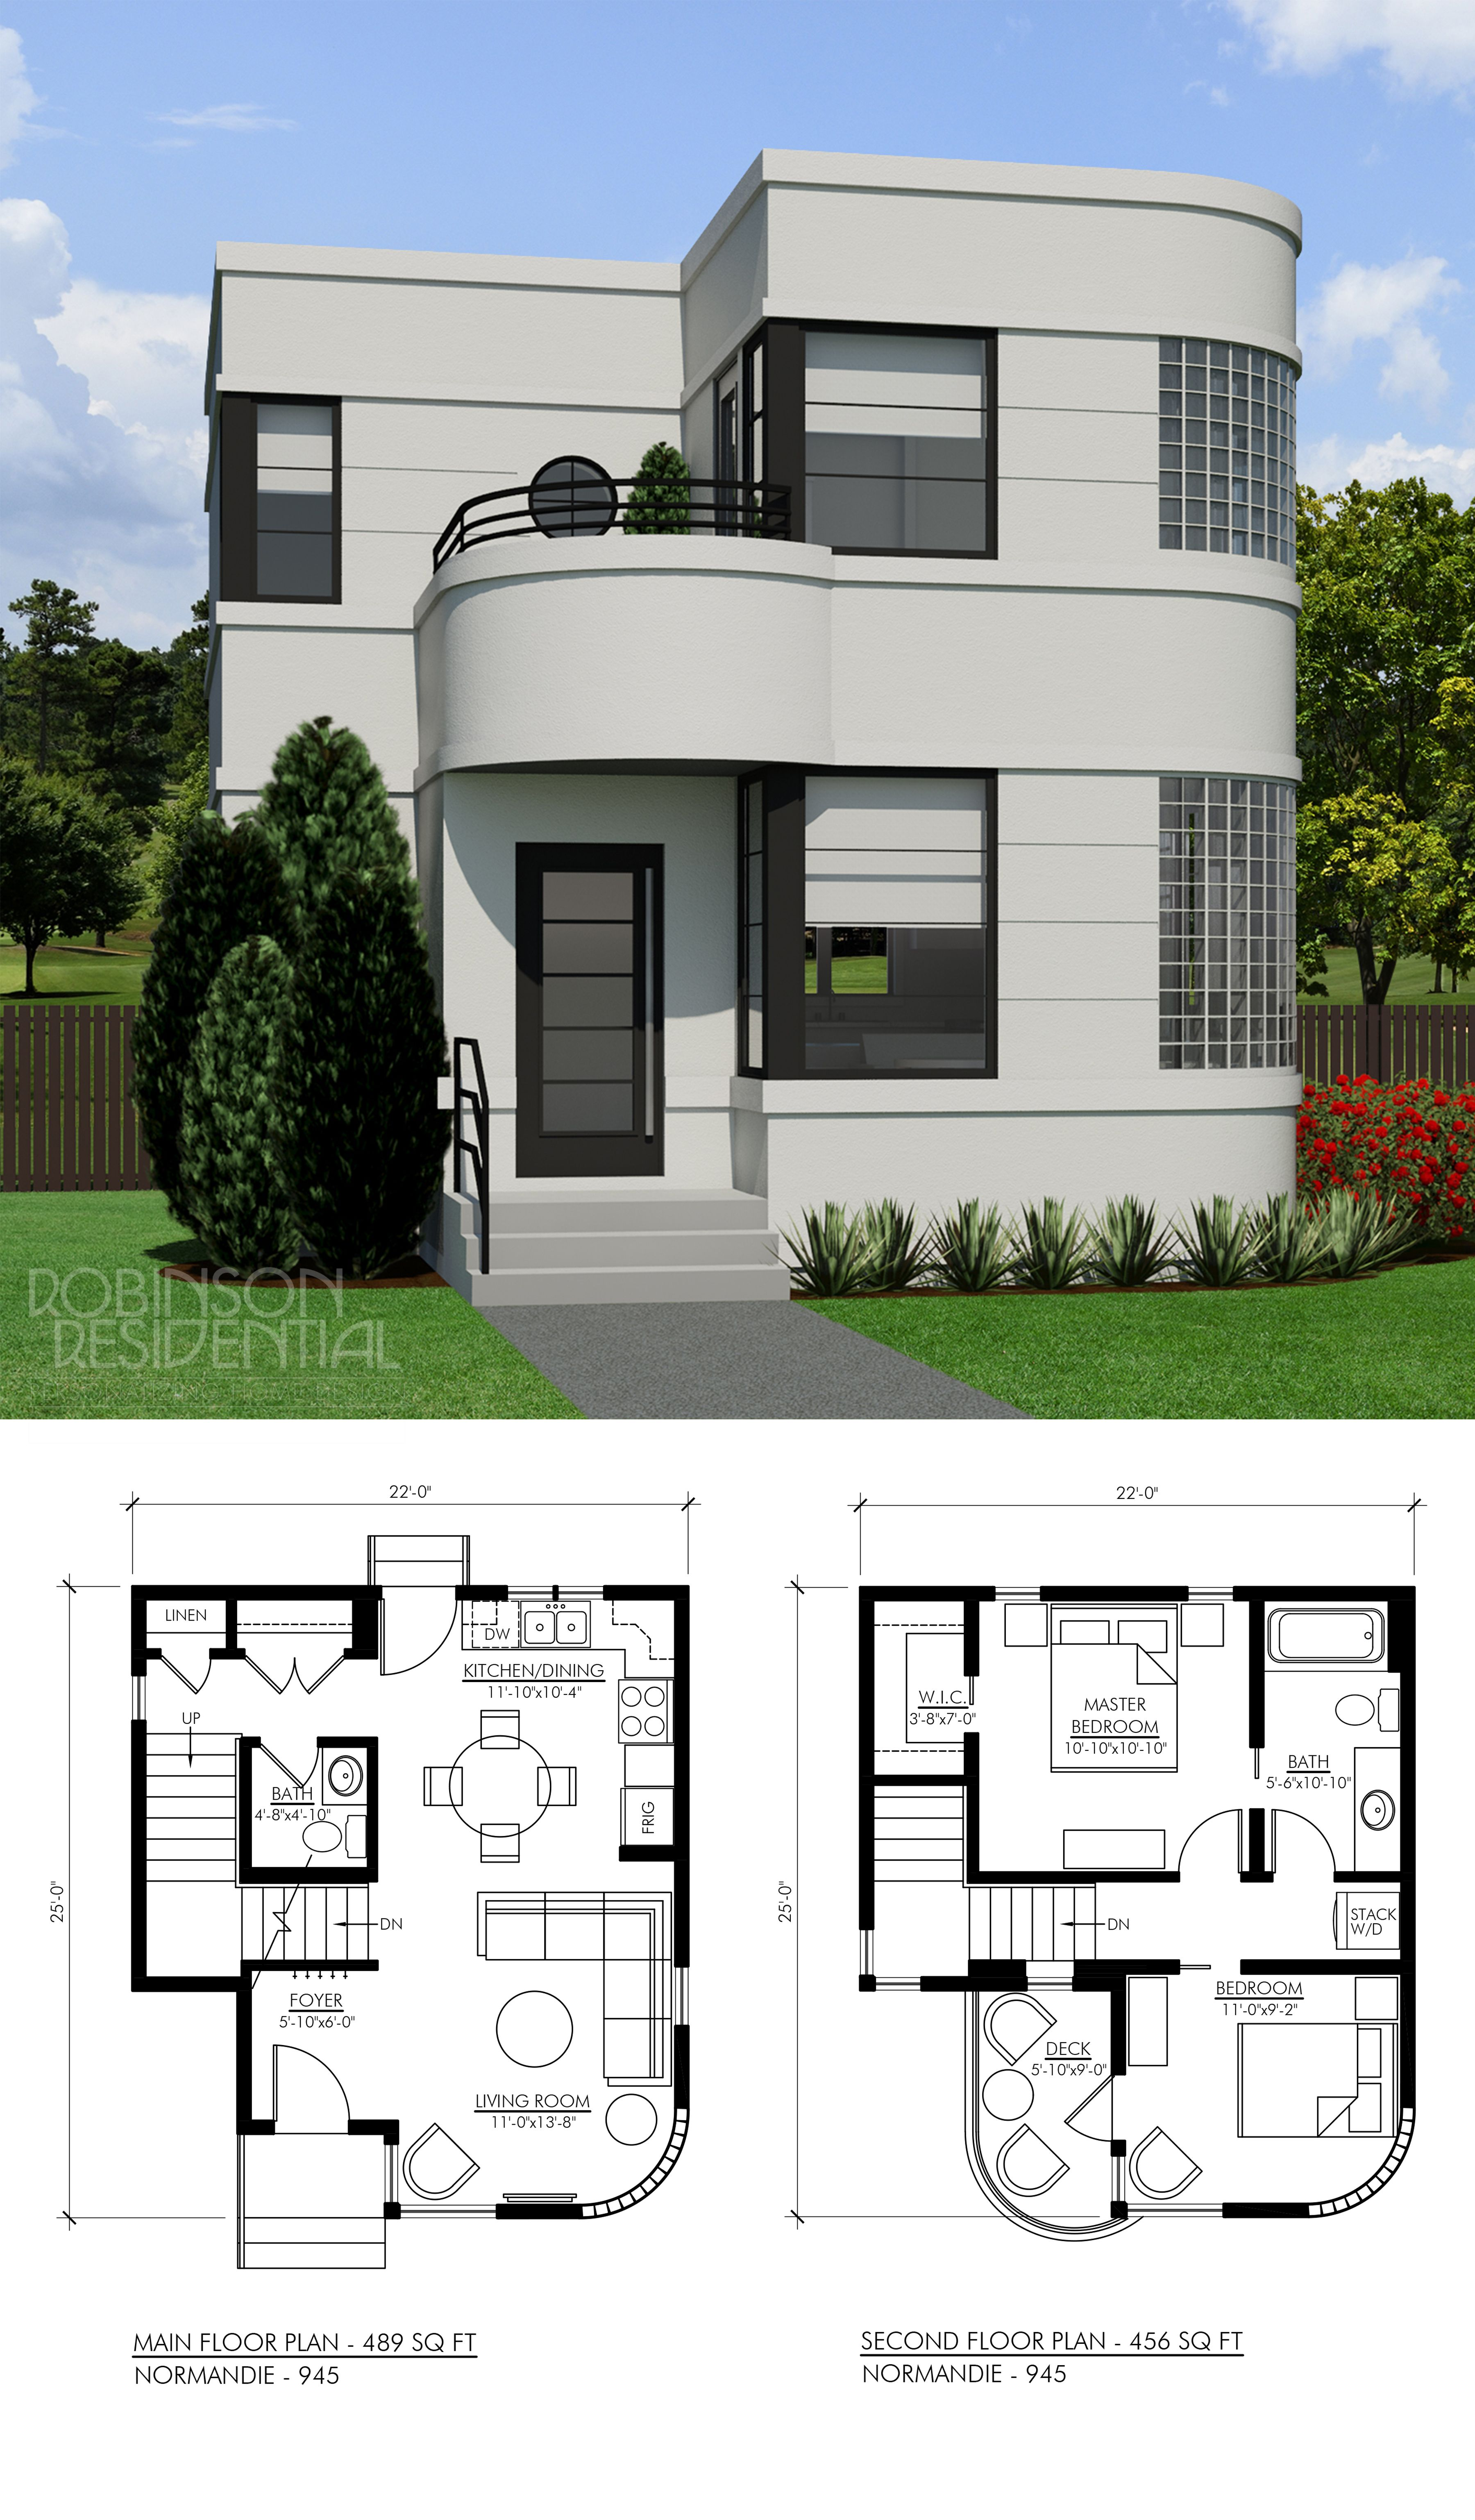 Contemporary normandie tiny house plans floor modern also in rh pinterest